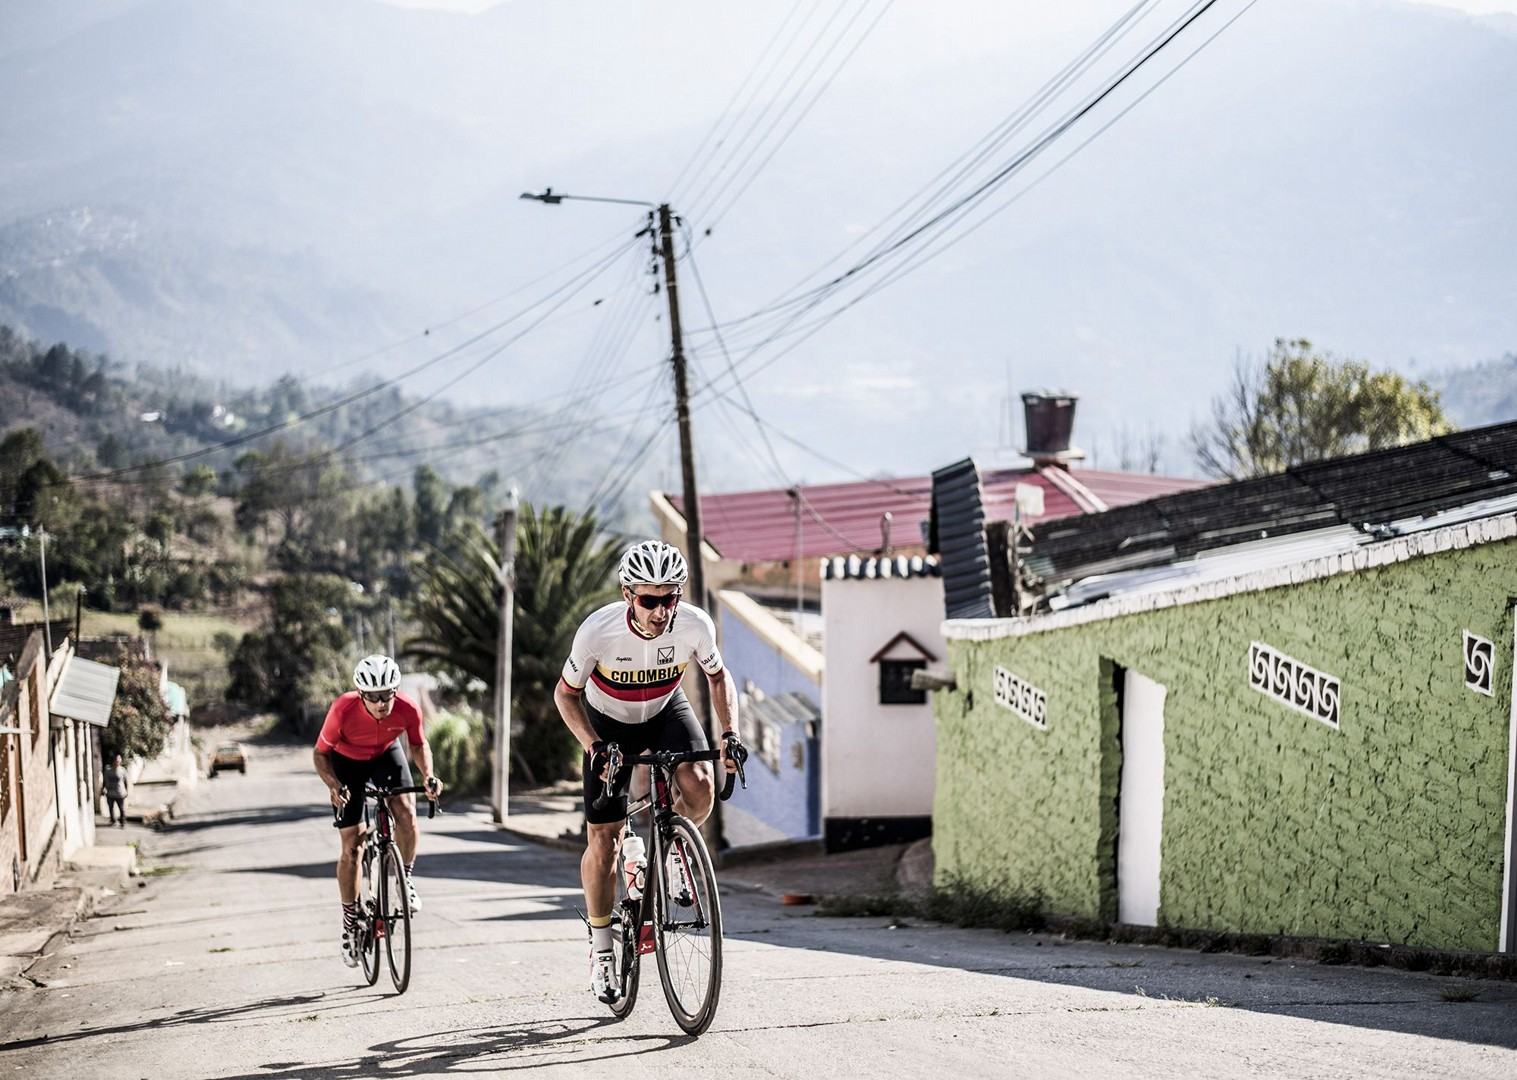 day_2_046.jpg - Colombia - Emerald Mountains - Road Cycling